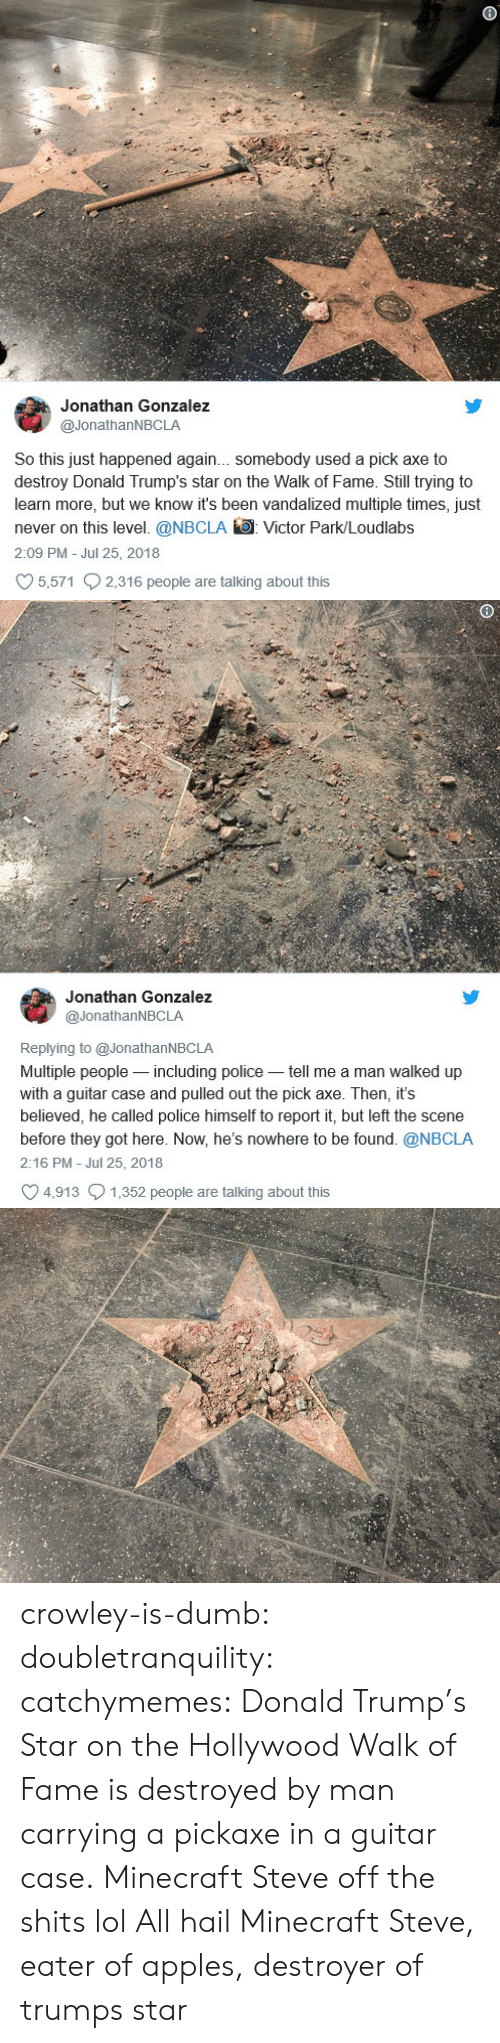 Donald Trump: Jonathan Gonzalez  @JonathanNBCLA  So this just happened again... somebody used a pick axe to  destroy Donald Trump's star on the Walk of Fame. Still trying to  learn more, but we know it's been vandalized multiple times, just  never on this level. @NBCLA Victor Park/Loudlabs  2:09 PM Jul 25, 2018  5,571 2,316 people are talking about this   Jonathan Gonzalez  @JonathanNBCLA  Replying to @JonathanNBCLA  Multiple people-including police tell me a man walked up  with a guitar case and pulled out the pick axe. Then, it's  believed, he called police himself to report it, but left the scene  before they got here. Now, he's nowhere to be found. @NBCLA  2:16 PM - Jul 25, 2018  4,913 1,352 people are talking about this crowley-is-dumb:  doubletranquility: catchymemes:  Donald Trump's Star on the Hollywood Walk of Fame is destroyed by man carrying a pickaxe in a guitar case.  Minecraft Steve off the shits lol   All hail Minecraft Steve, eater of apples, destroyer of trumps star